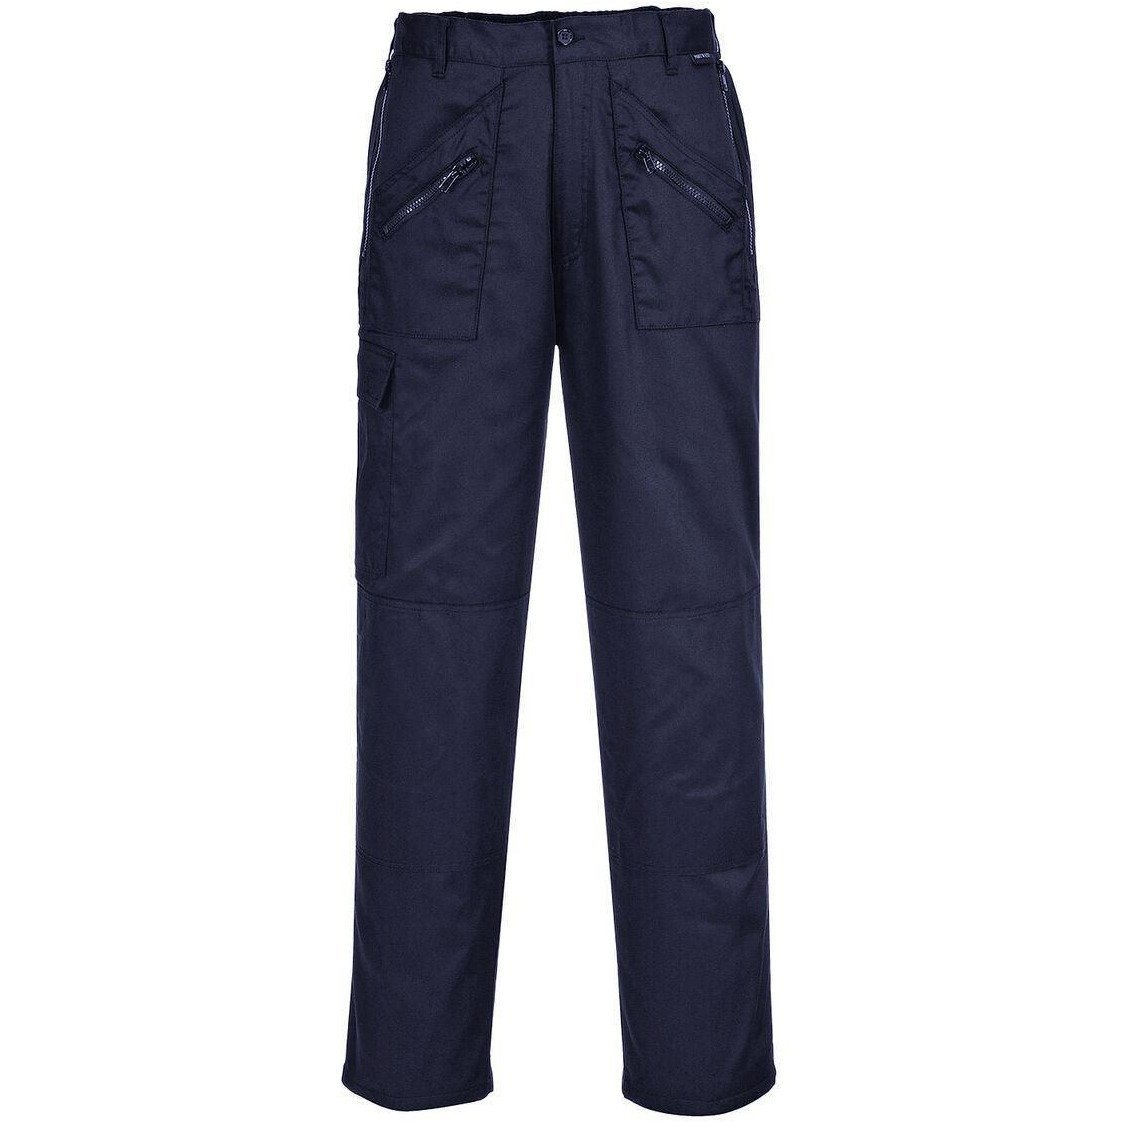 Portwest Lined Action Trousers C387 - reid outdoors